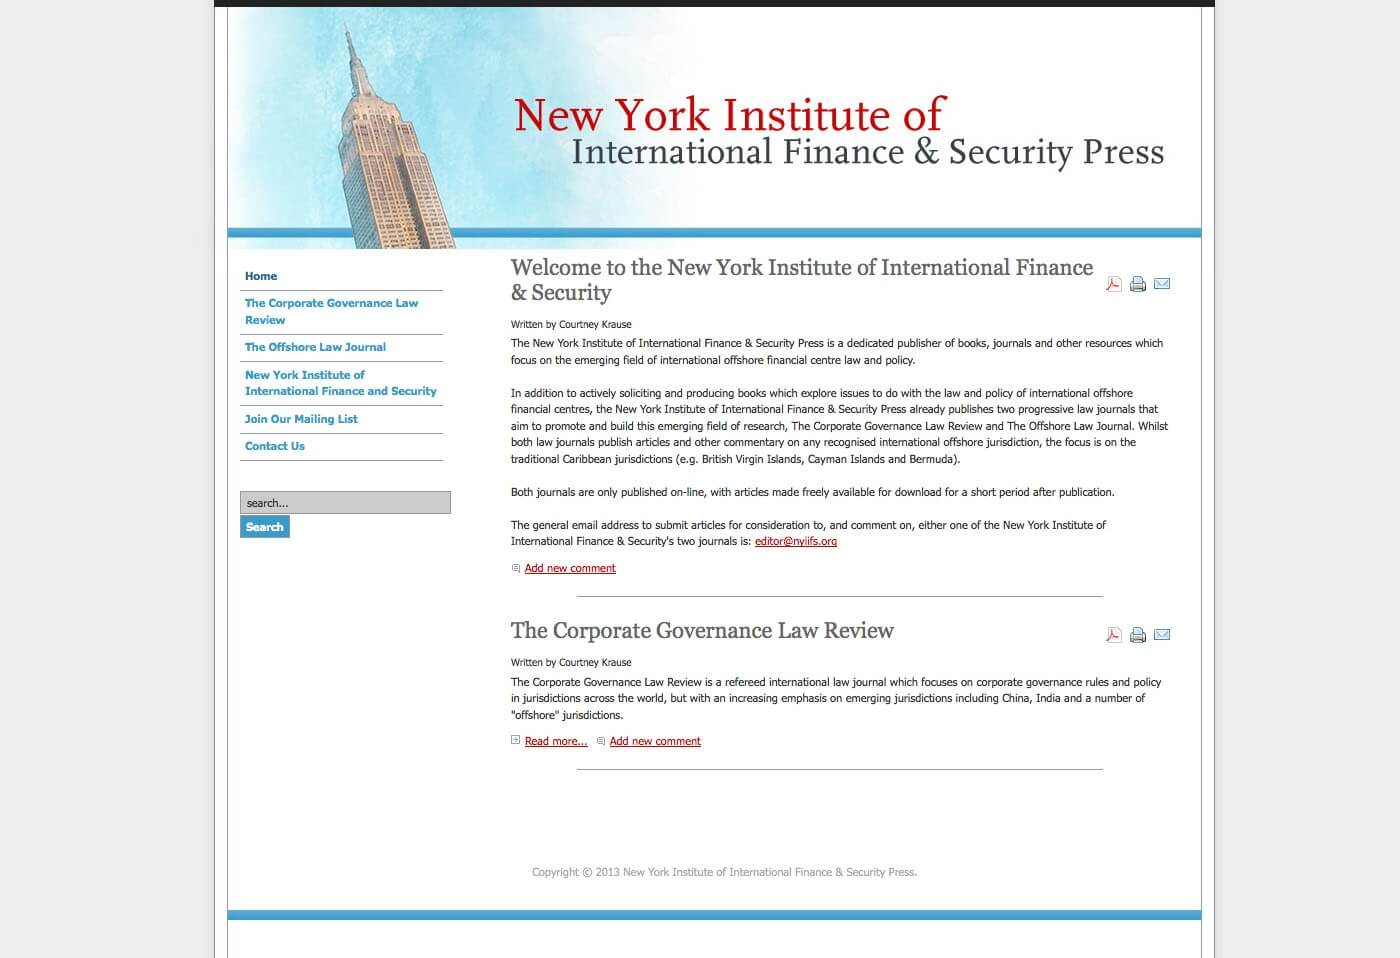 Able Video New York Institute of International Finance and Security Press Website